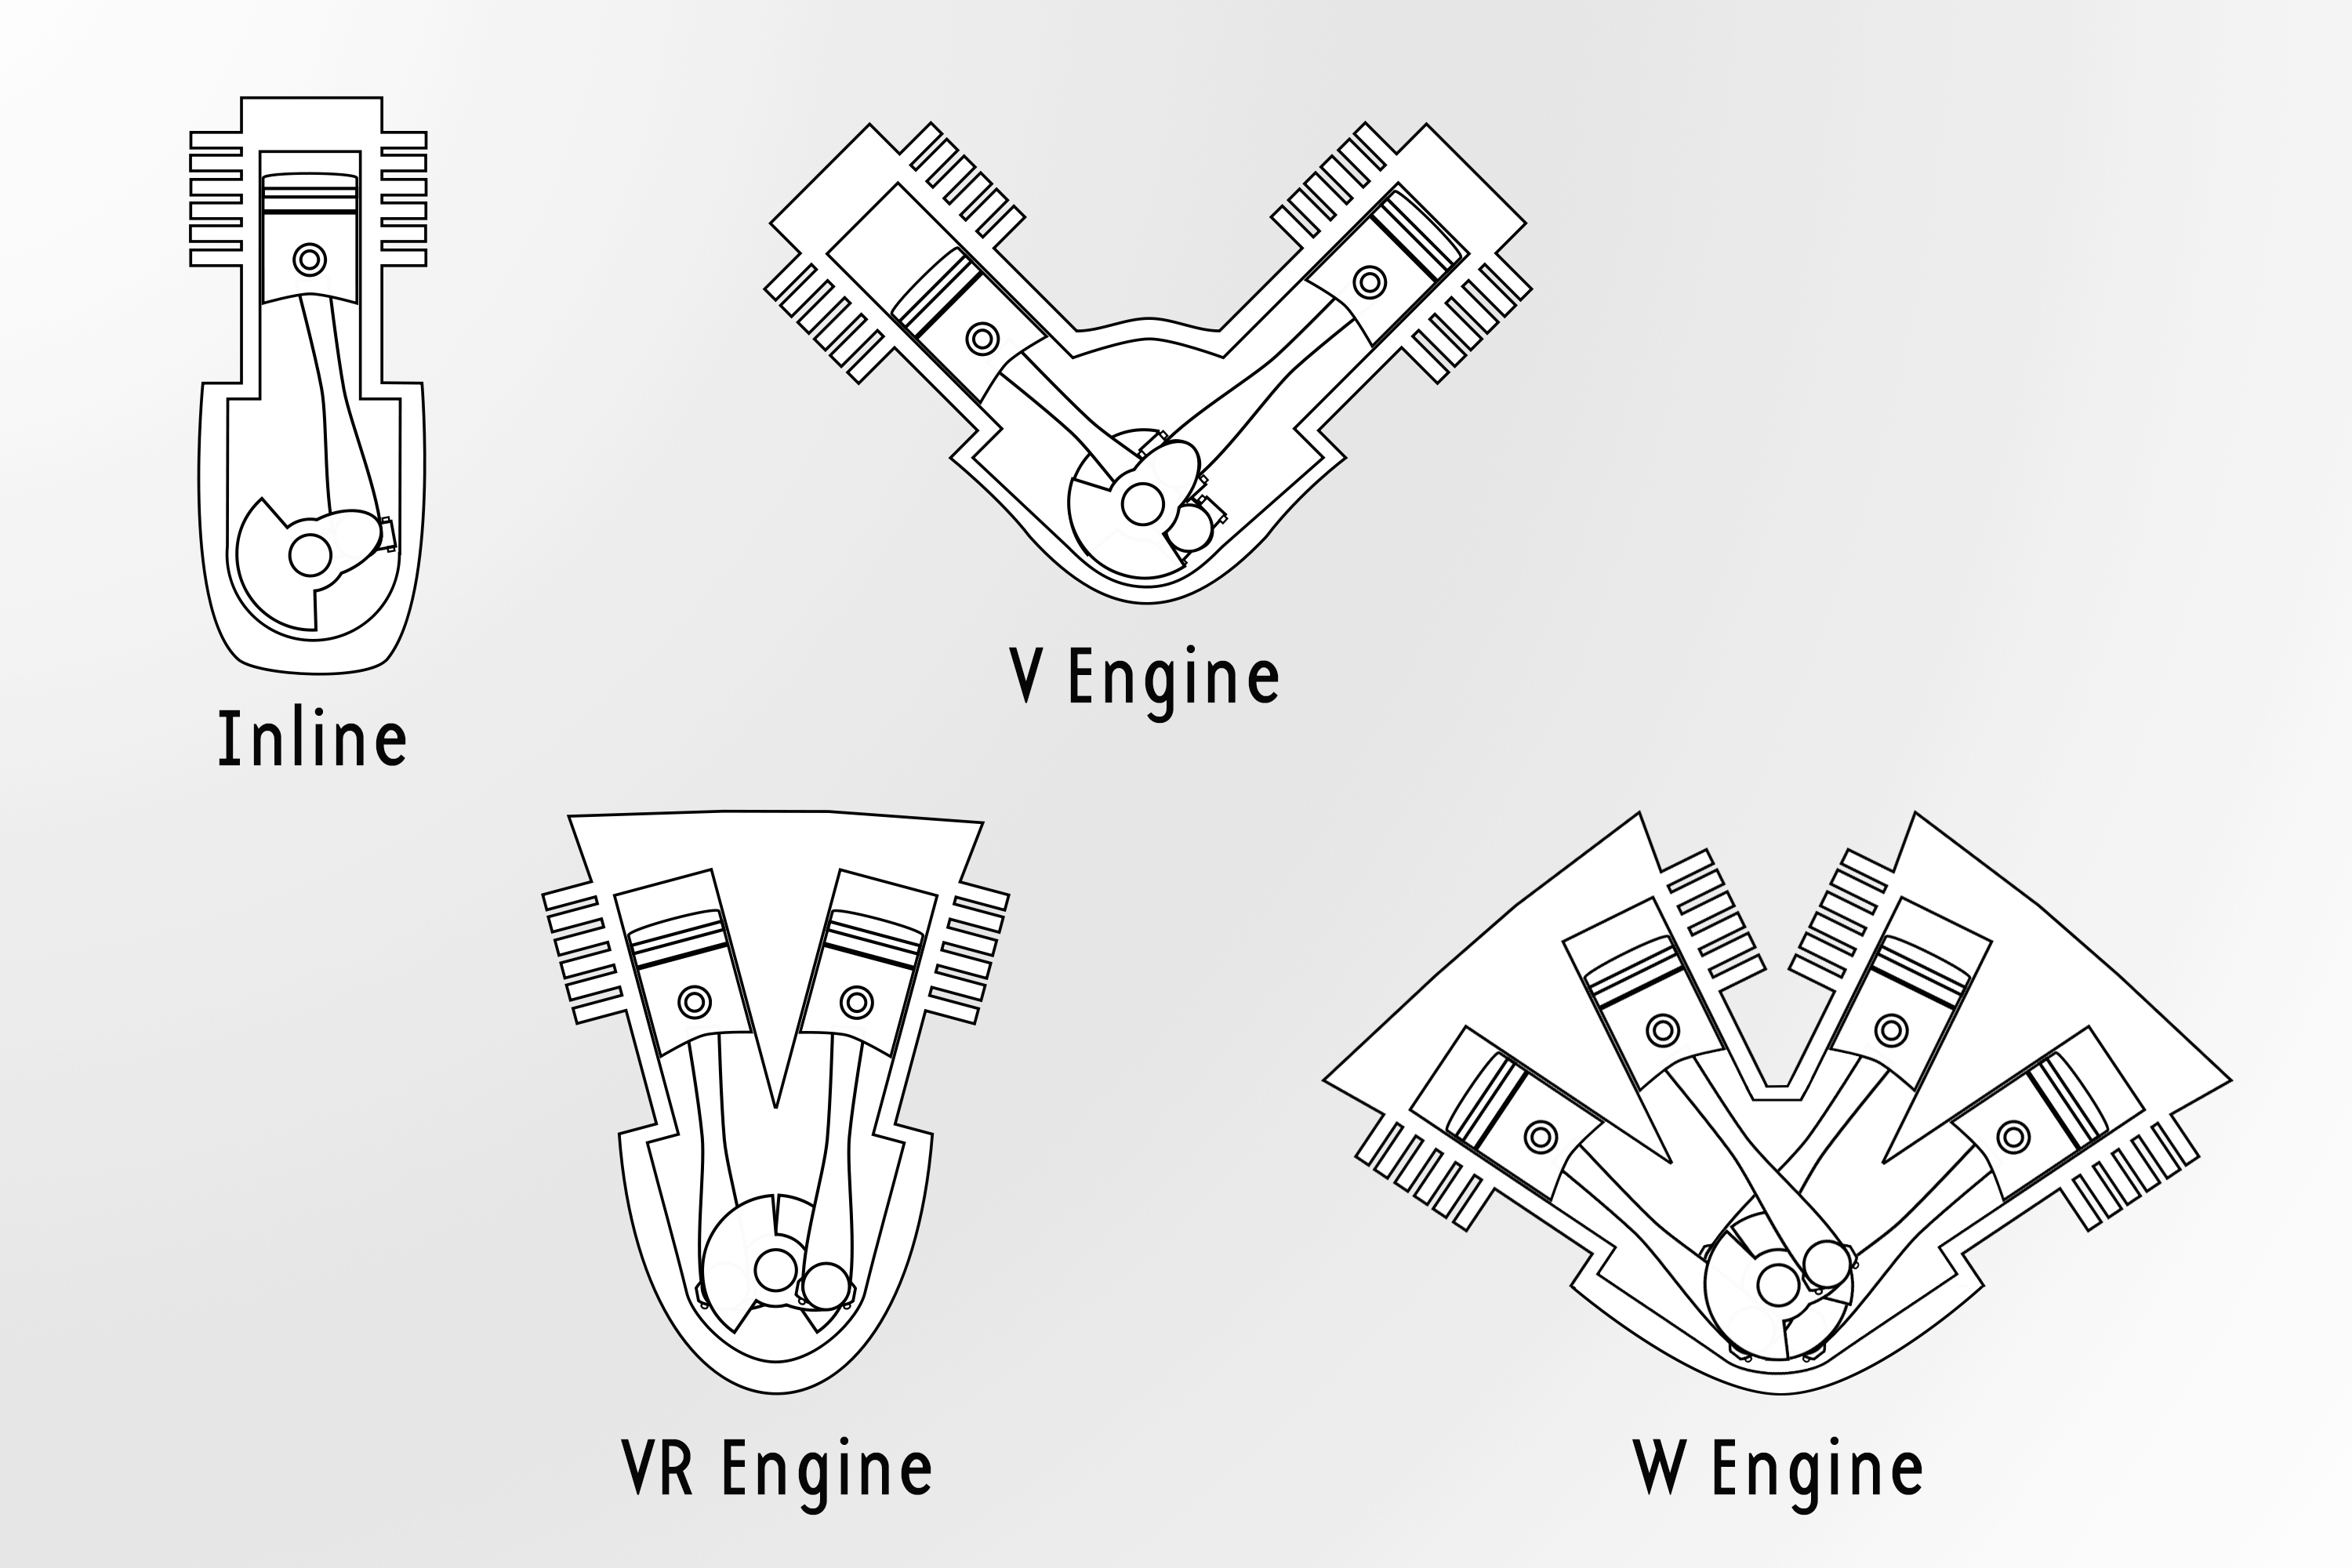 Vr V6 Auto Wiring Diagram Electrical Diagrams Schematic Control V24 Engine Trusted 1999